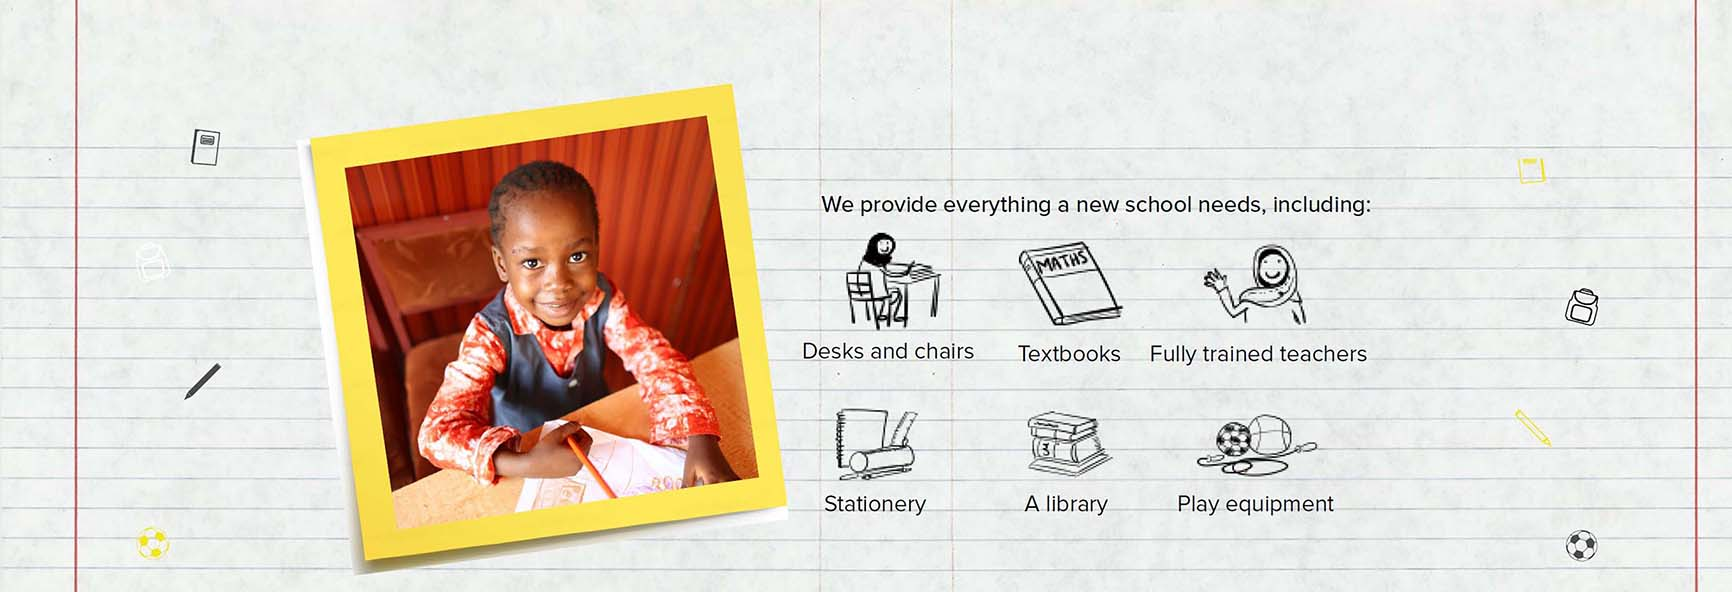 Education charity involves desks, textbooks, fully trained teachers, stationery, a library, play equipment